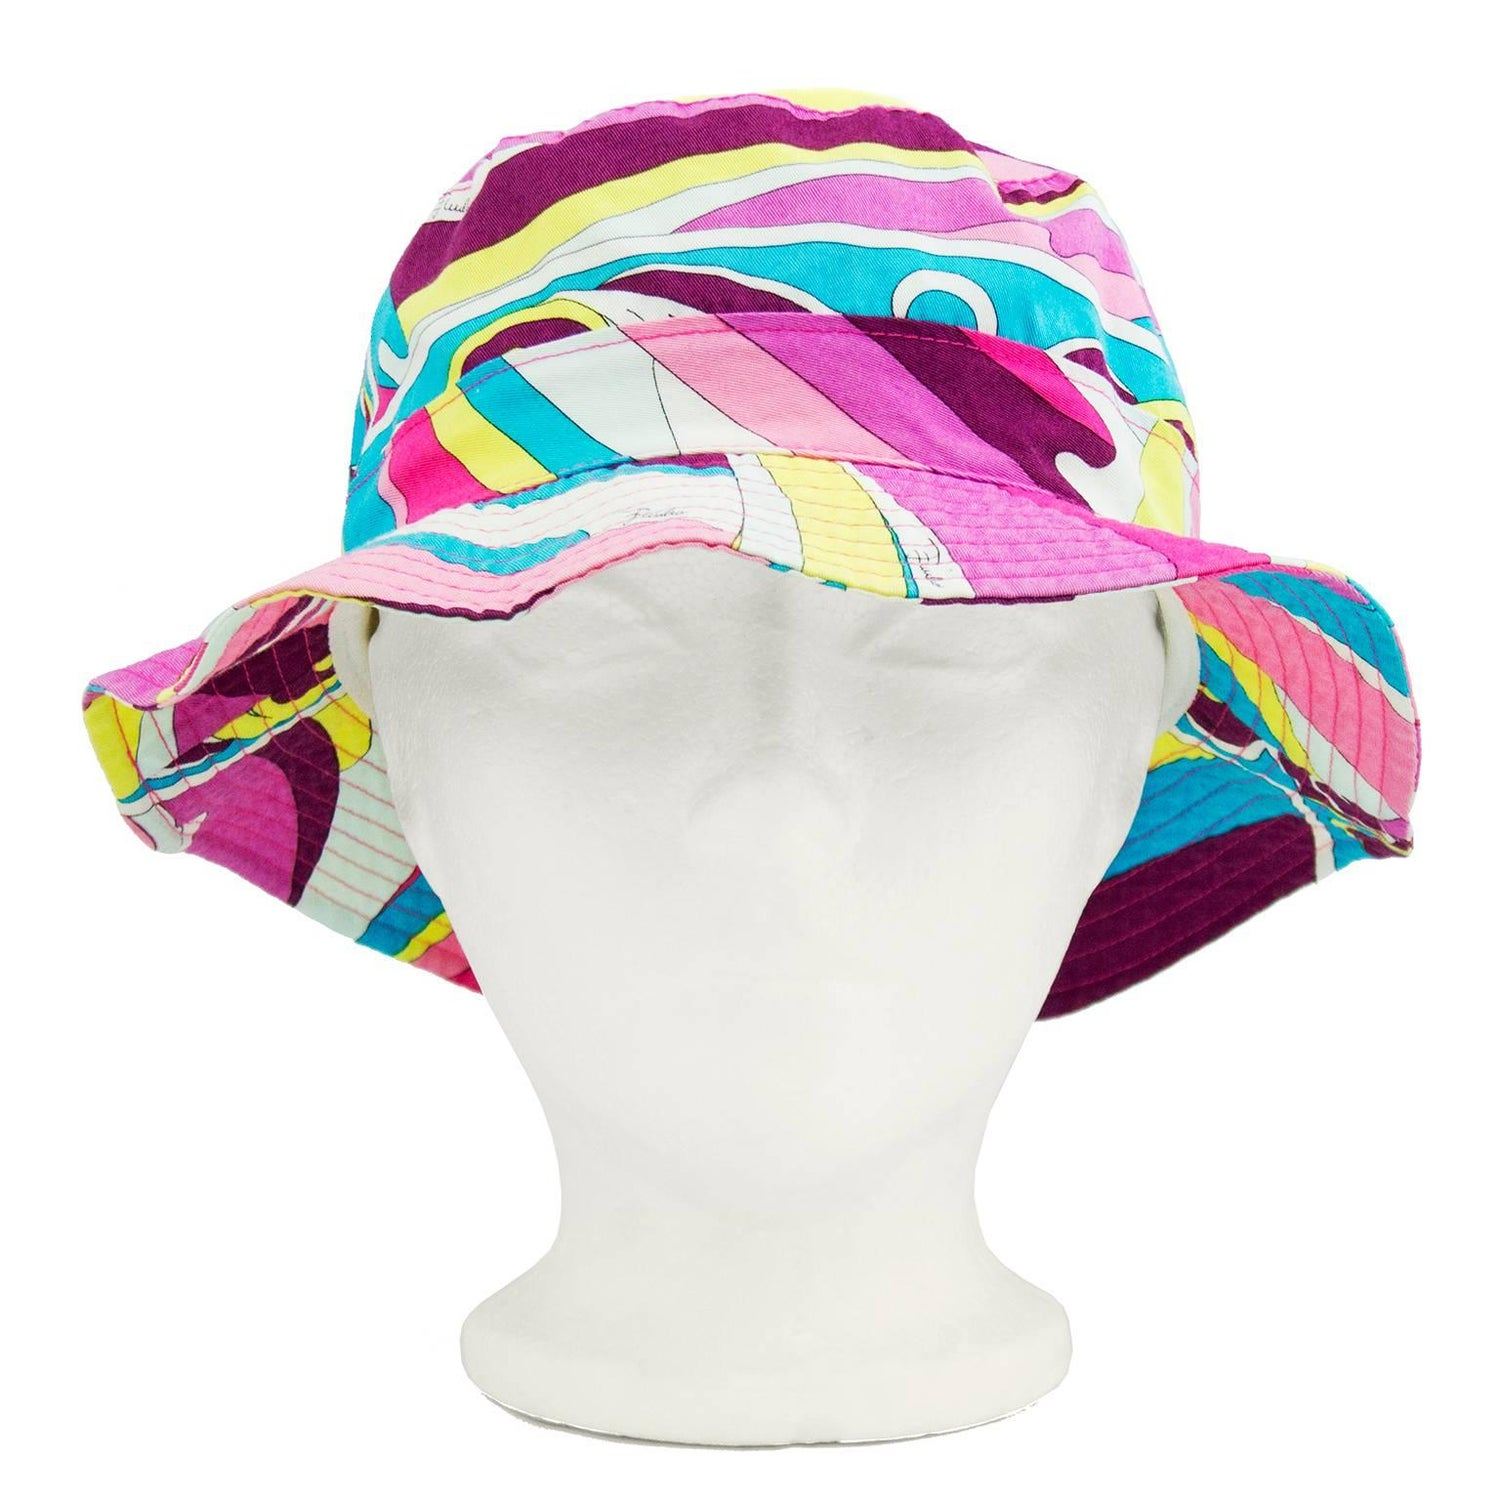 9752a310d8242 Early 2000s Emilio Pucci Pink and Blue Bucket Hat For Sale at 1stdibs